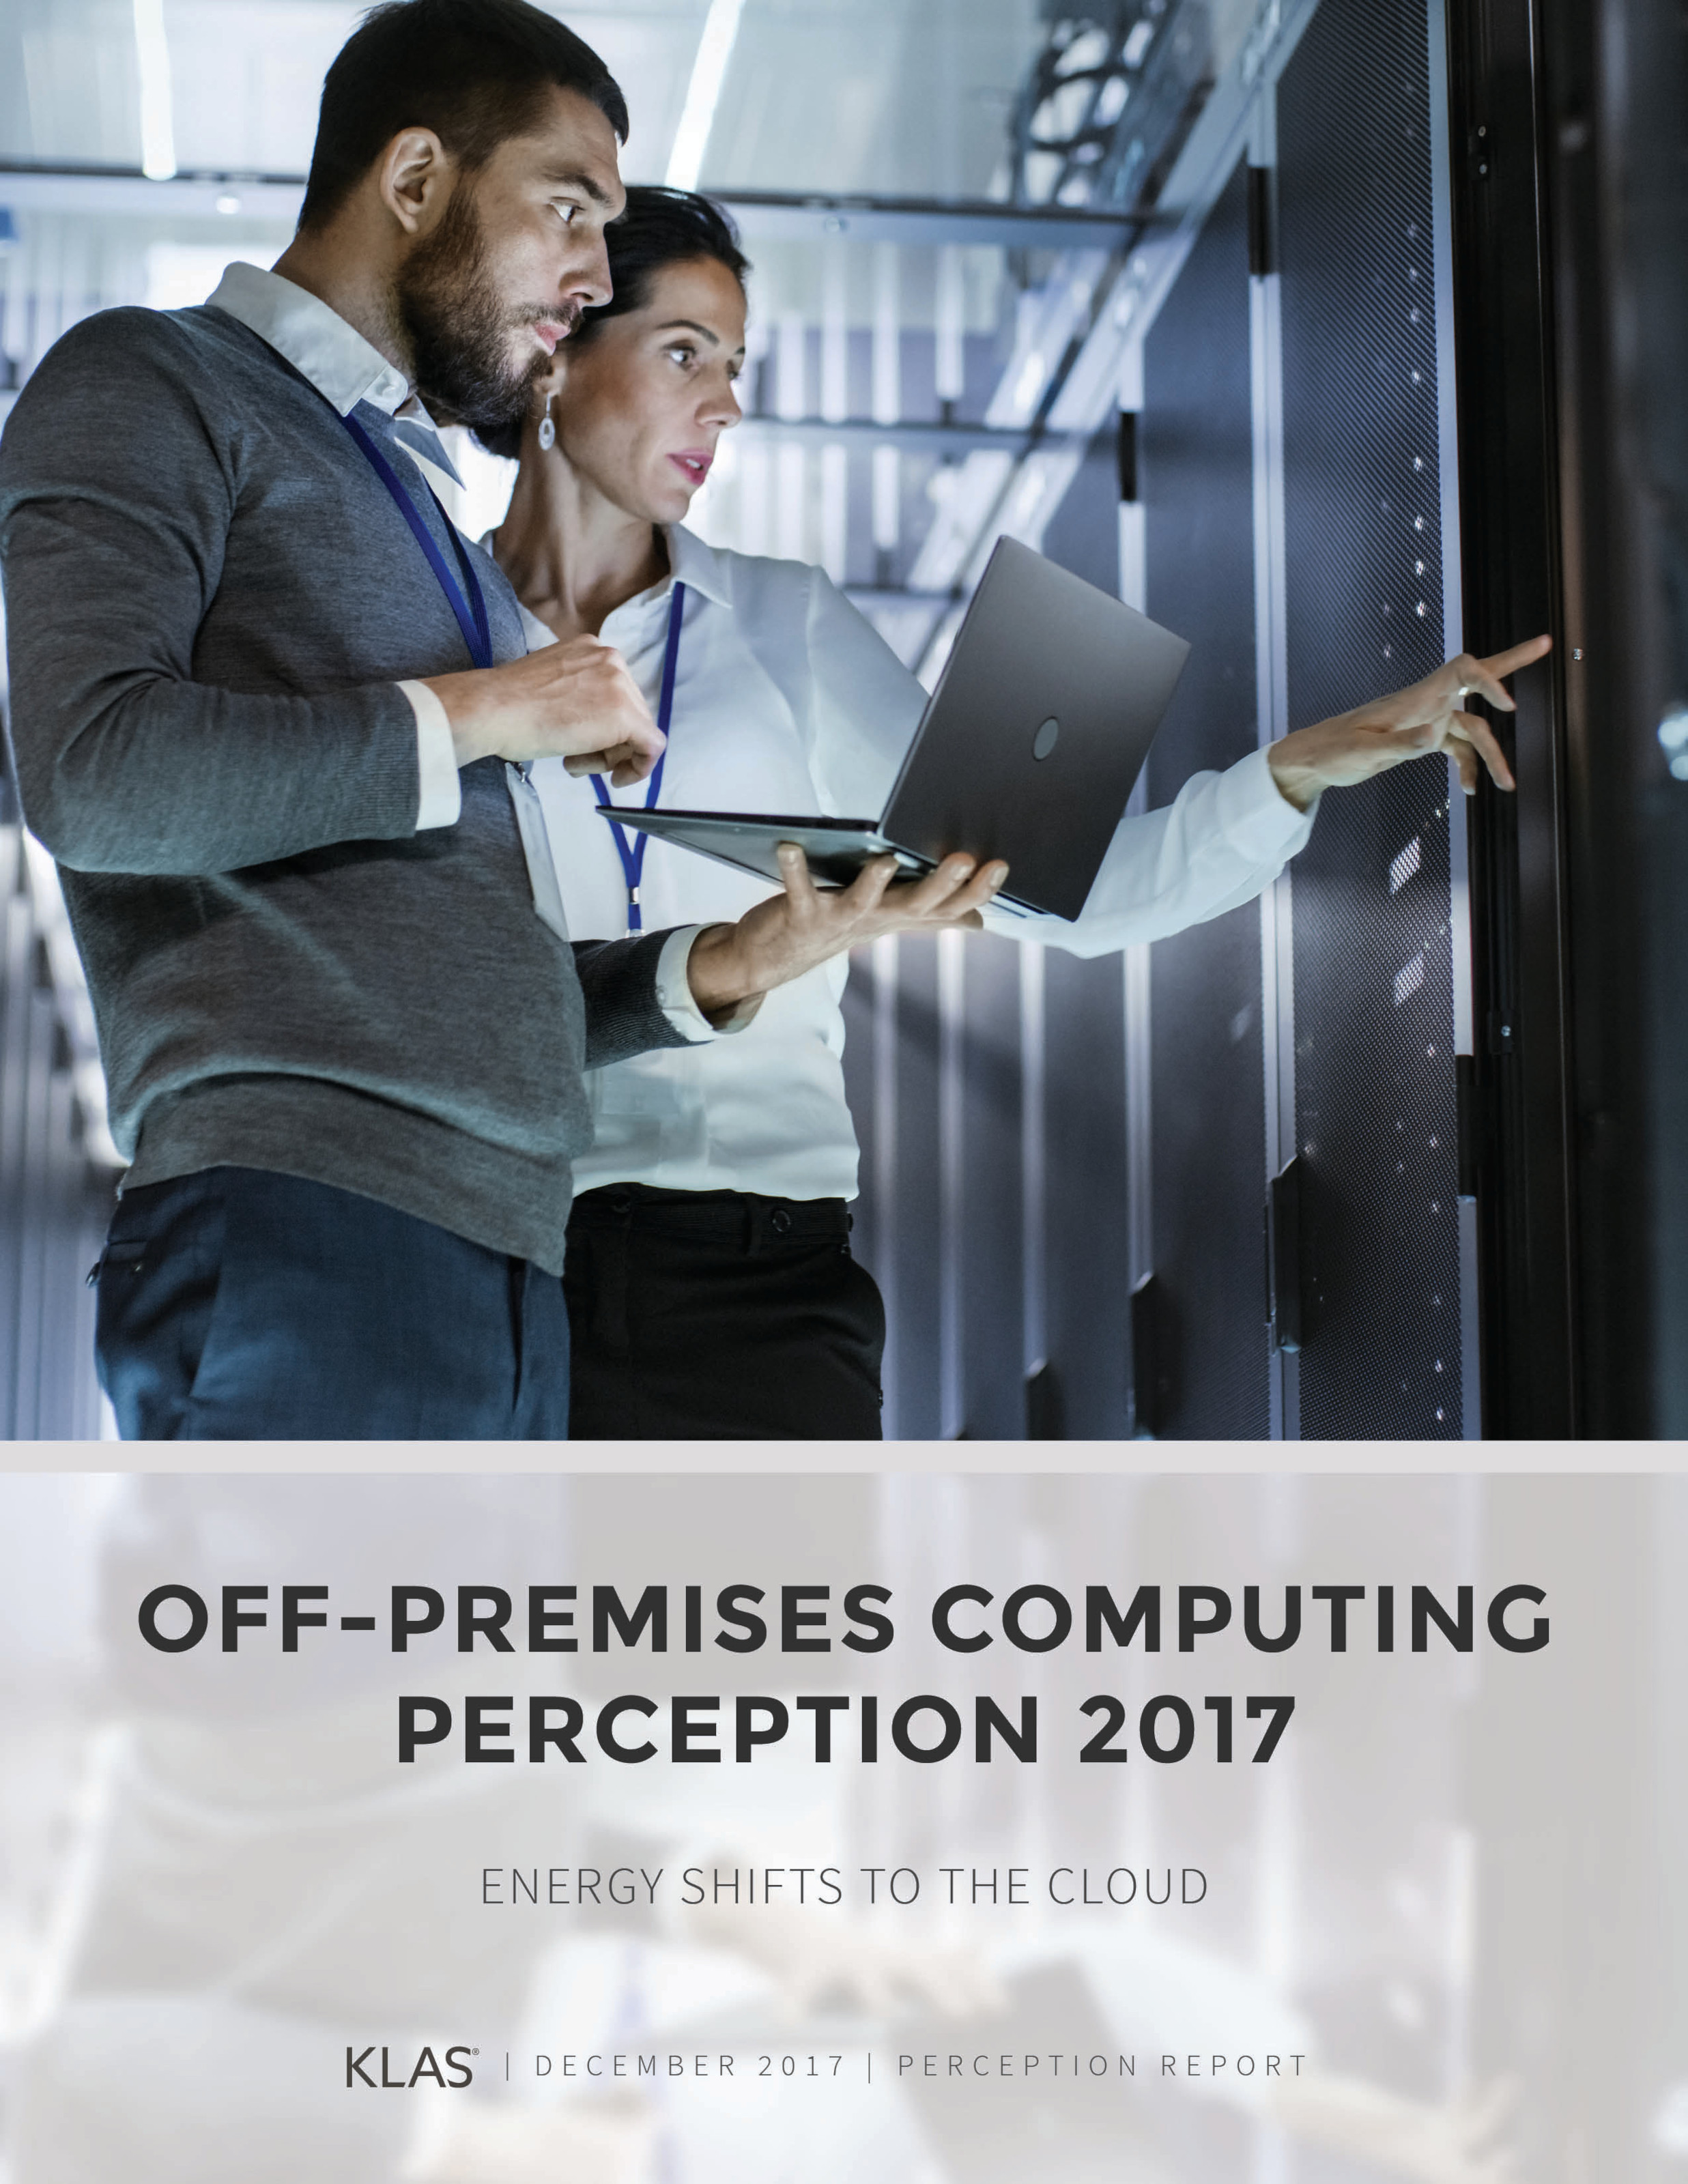 Off-Premises Computing Perception 2017